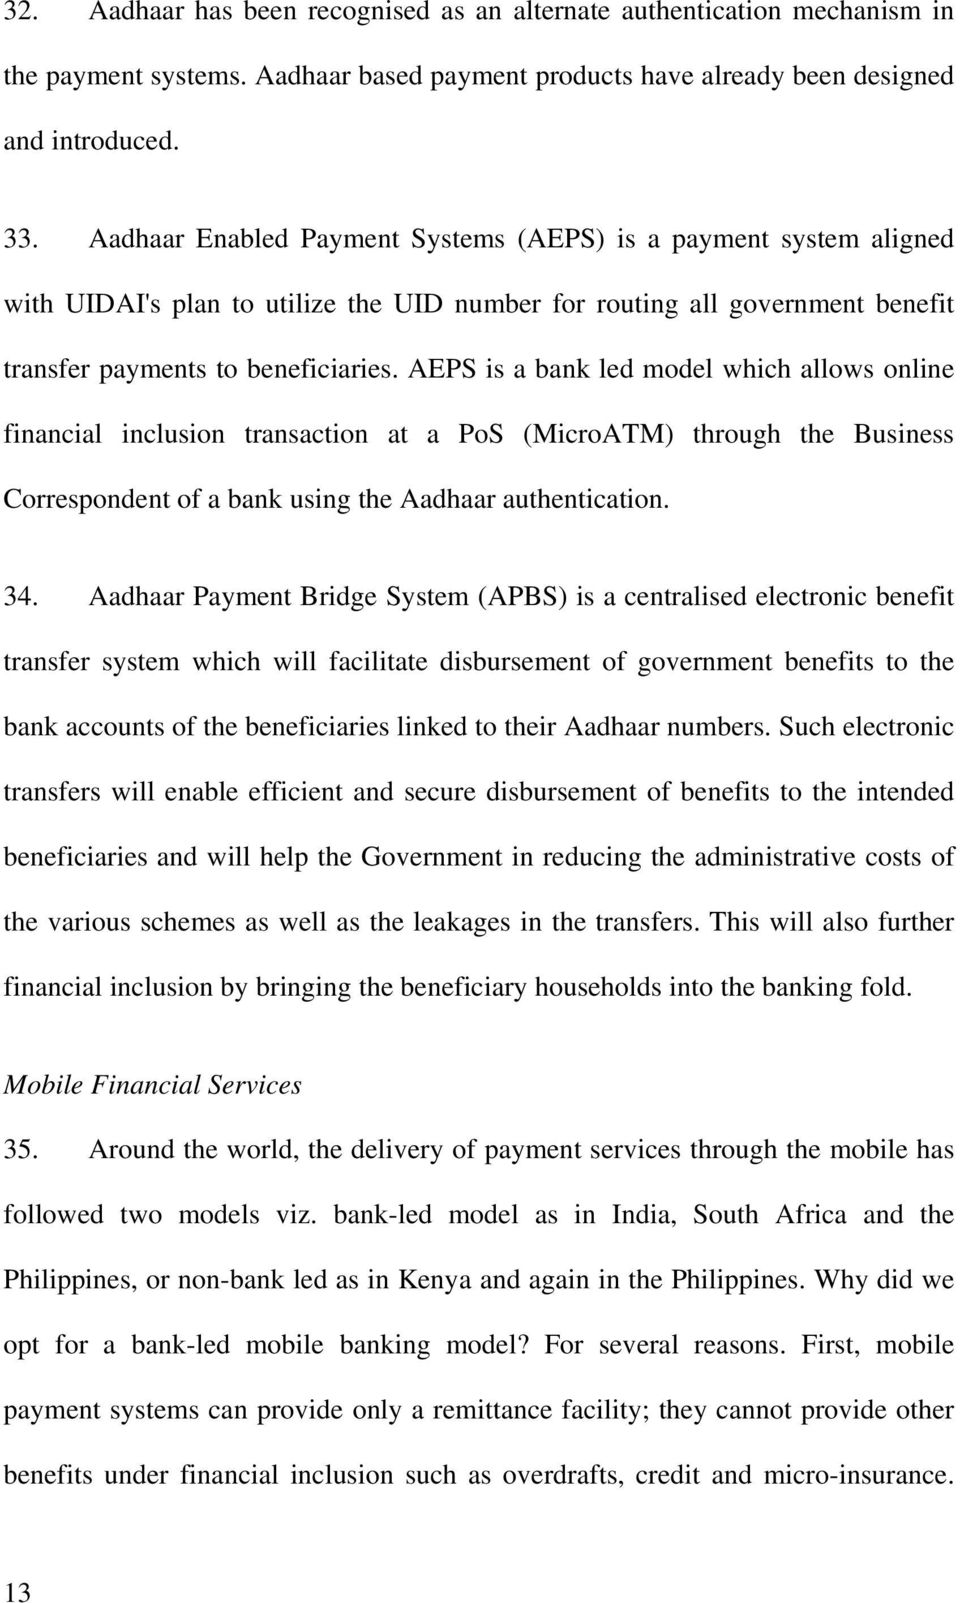 AEPS is a bank led model which allows online financial inclusion transaction at a PoS (MicroATM) through the Business Correspondent of a bank using the Aadhaar authentication. 34.